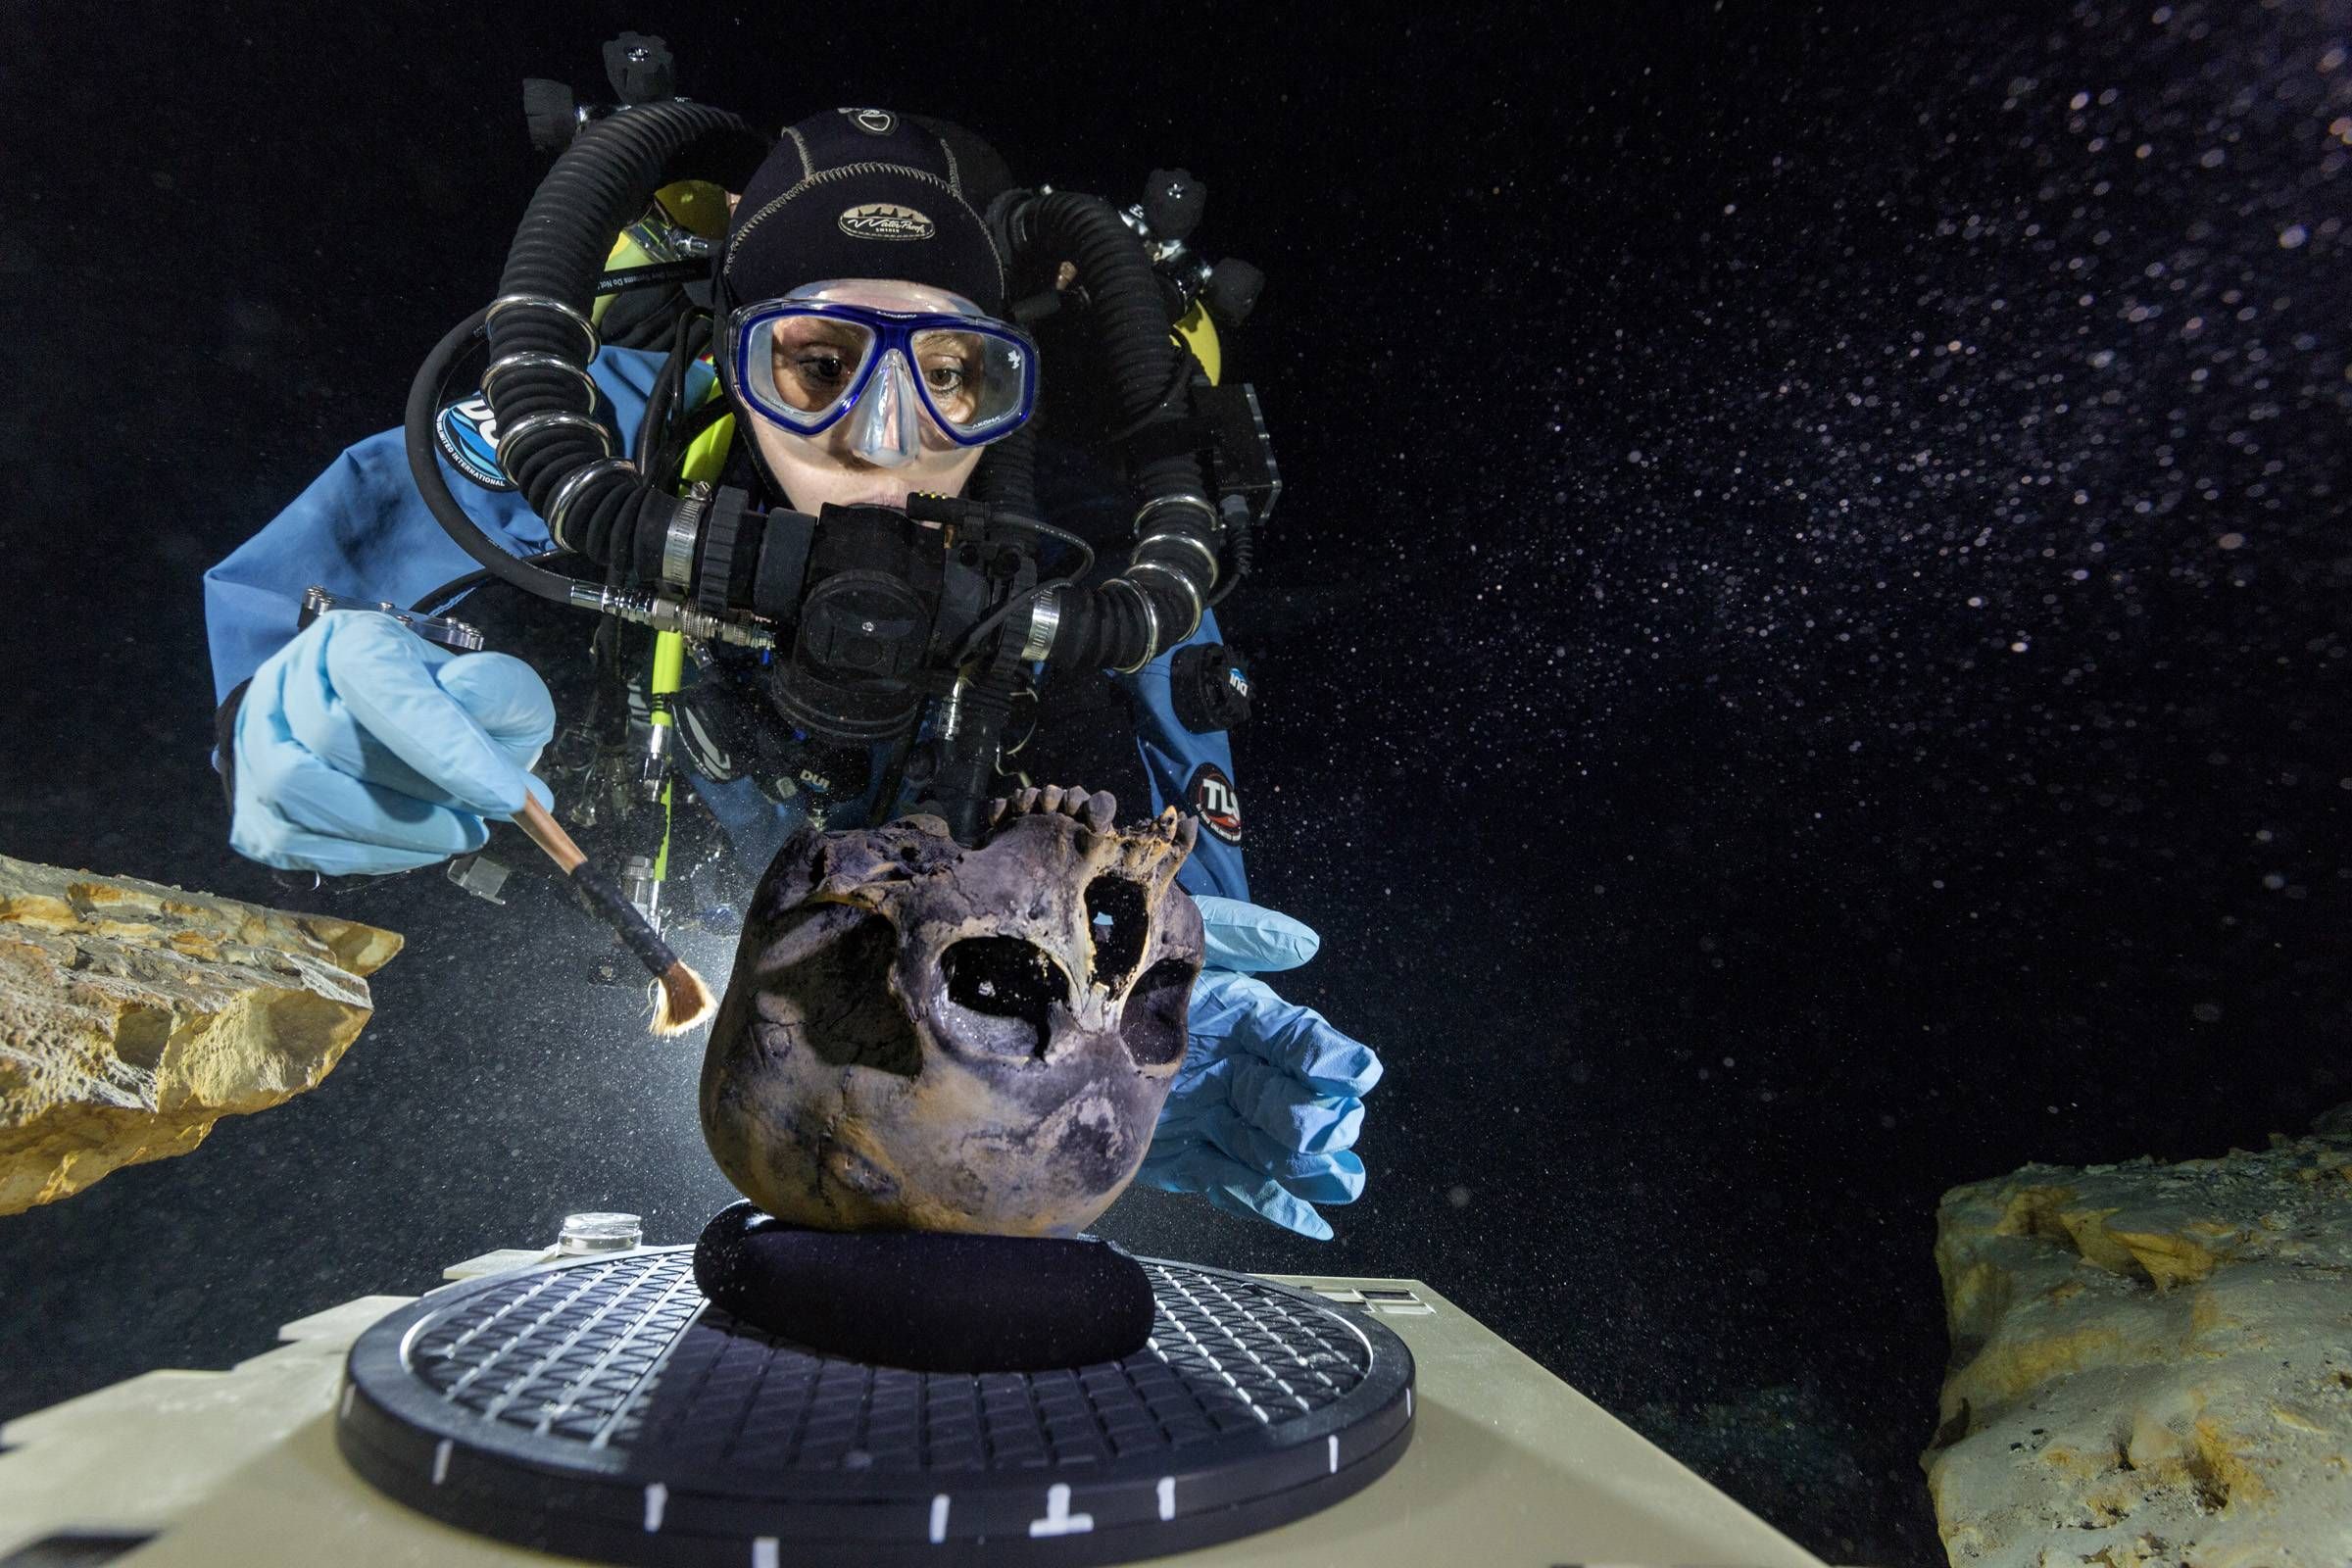 Diver Susan Bird, working at the bottom of Hoyo Negro, a large dome-shaped underwater cave in Mexico's Yucatan Peninsula, brushes a human skull found at the site while her team members take detailed photographs.